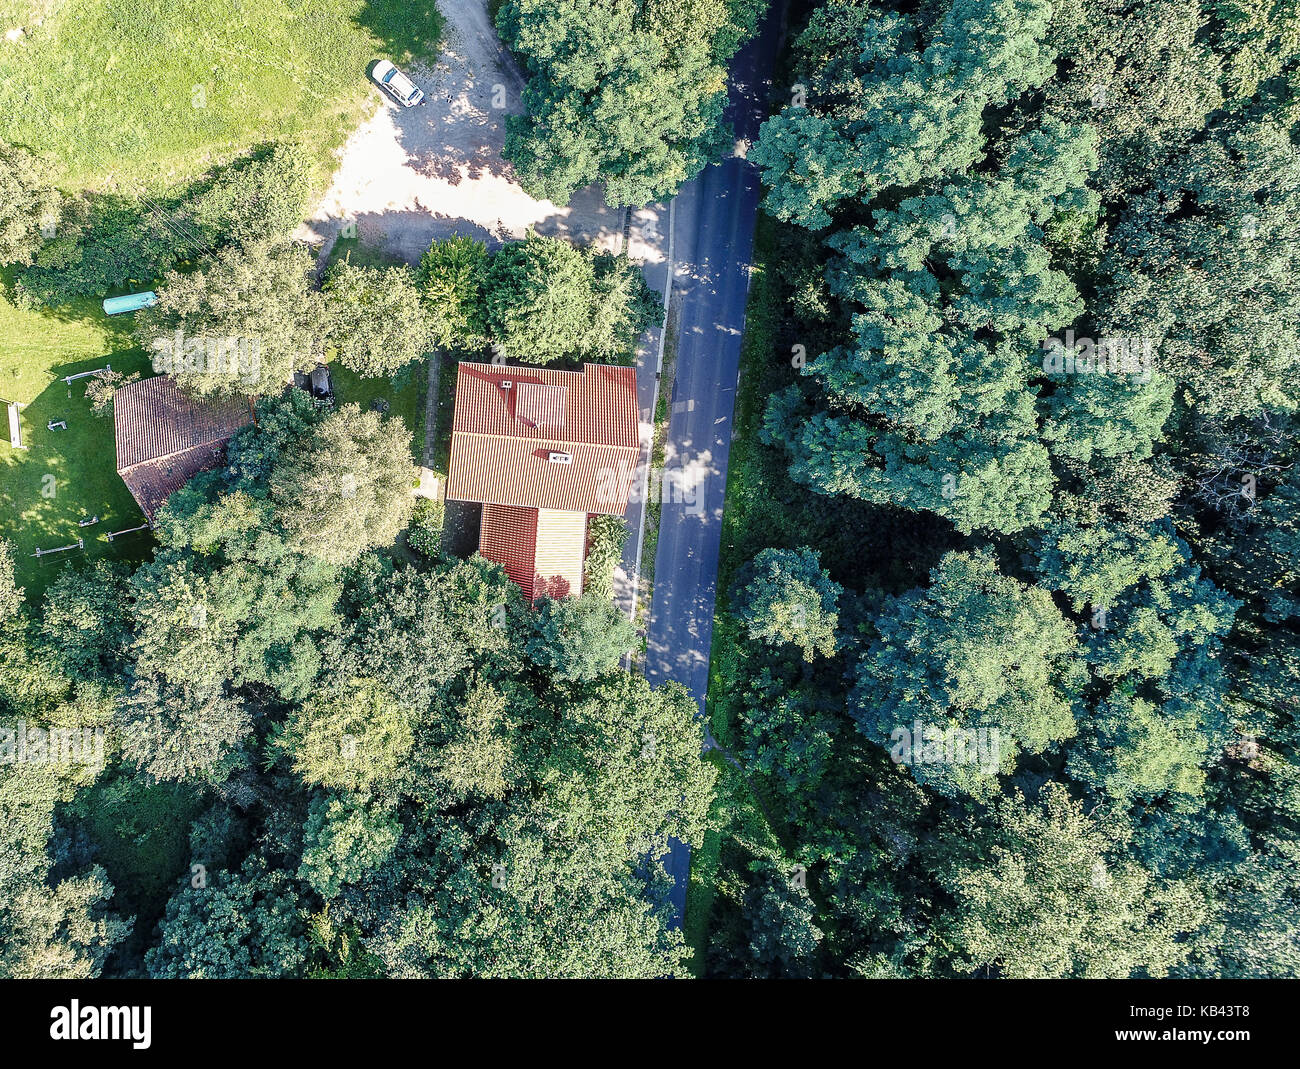 Aerial photo with the drone, anew build-up plot with single house and gardens - Stock Image